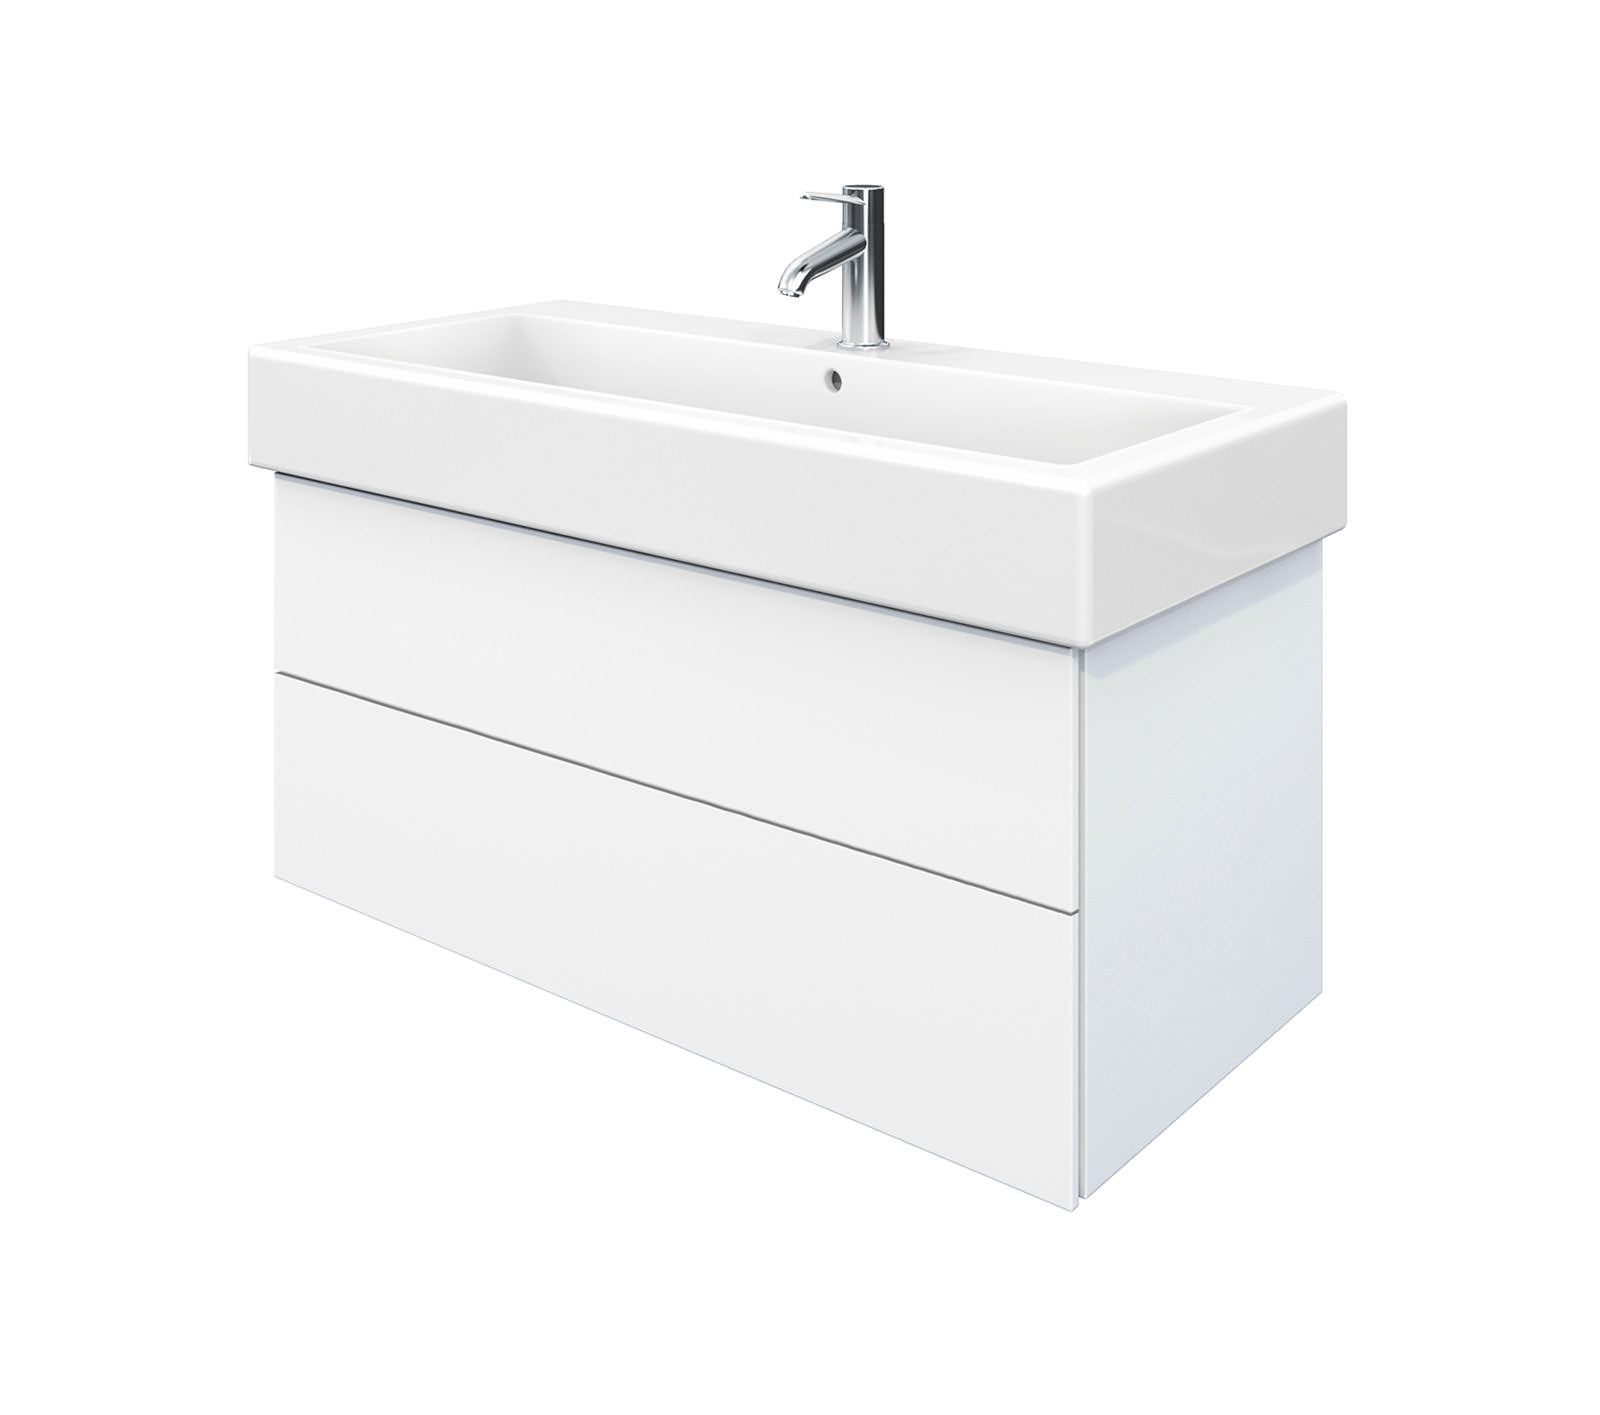 Duravit delos 2 drawers unit with vero 1000mm basin for 1000mm kitchen drawer unit